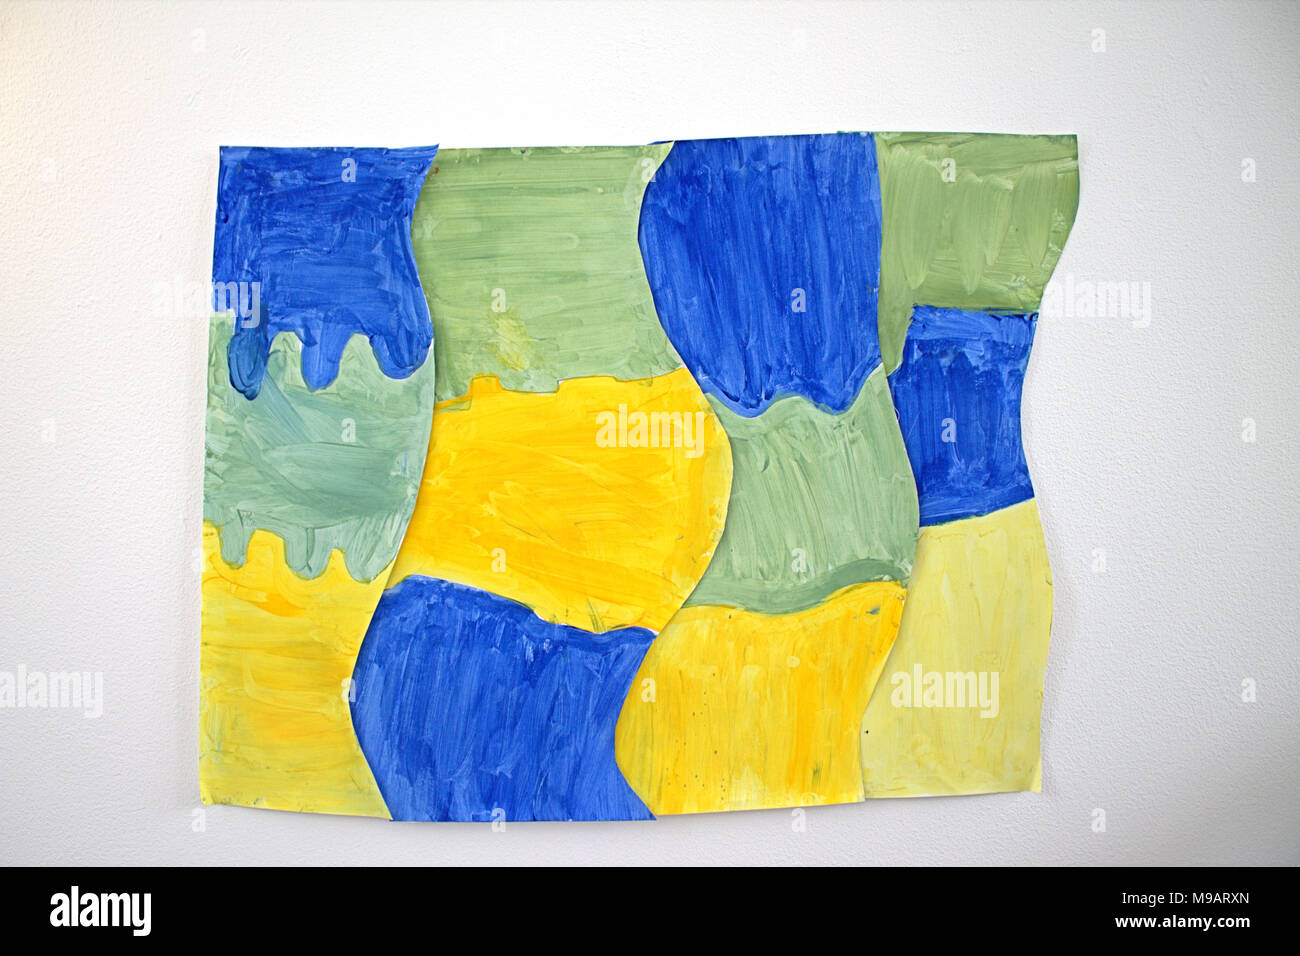 Childrens Painting Stock Photos & Childrens Painting Stock Images ...